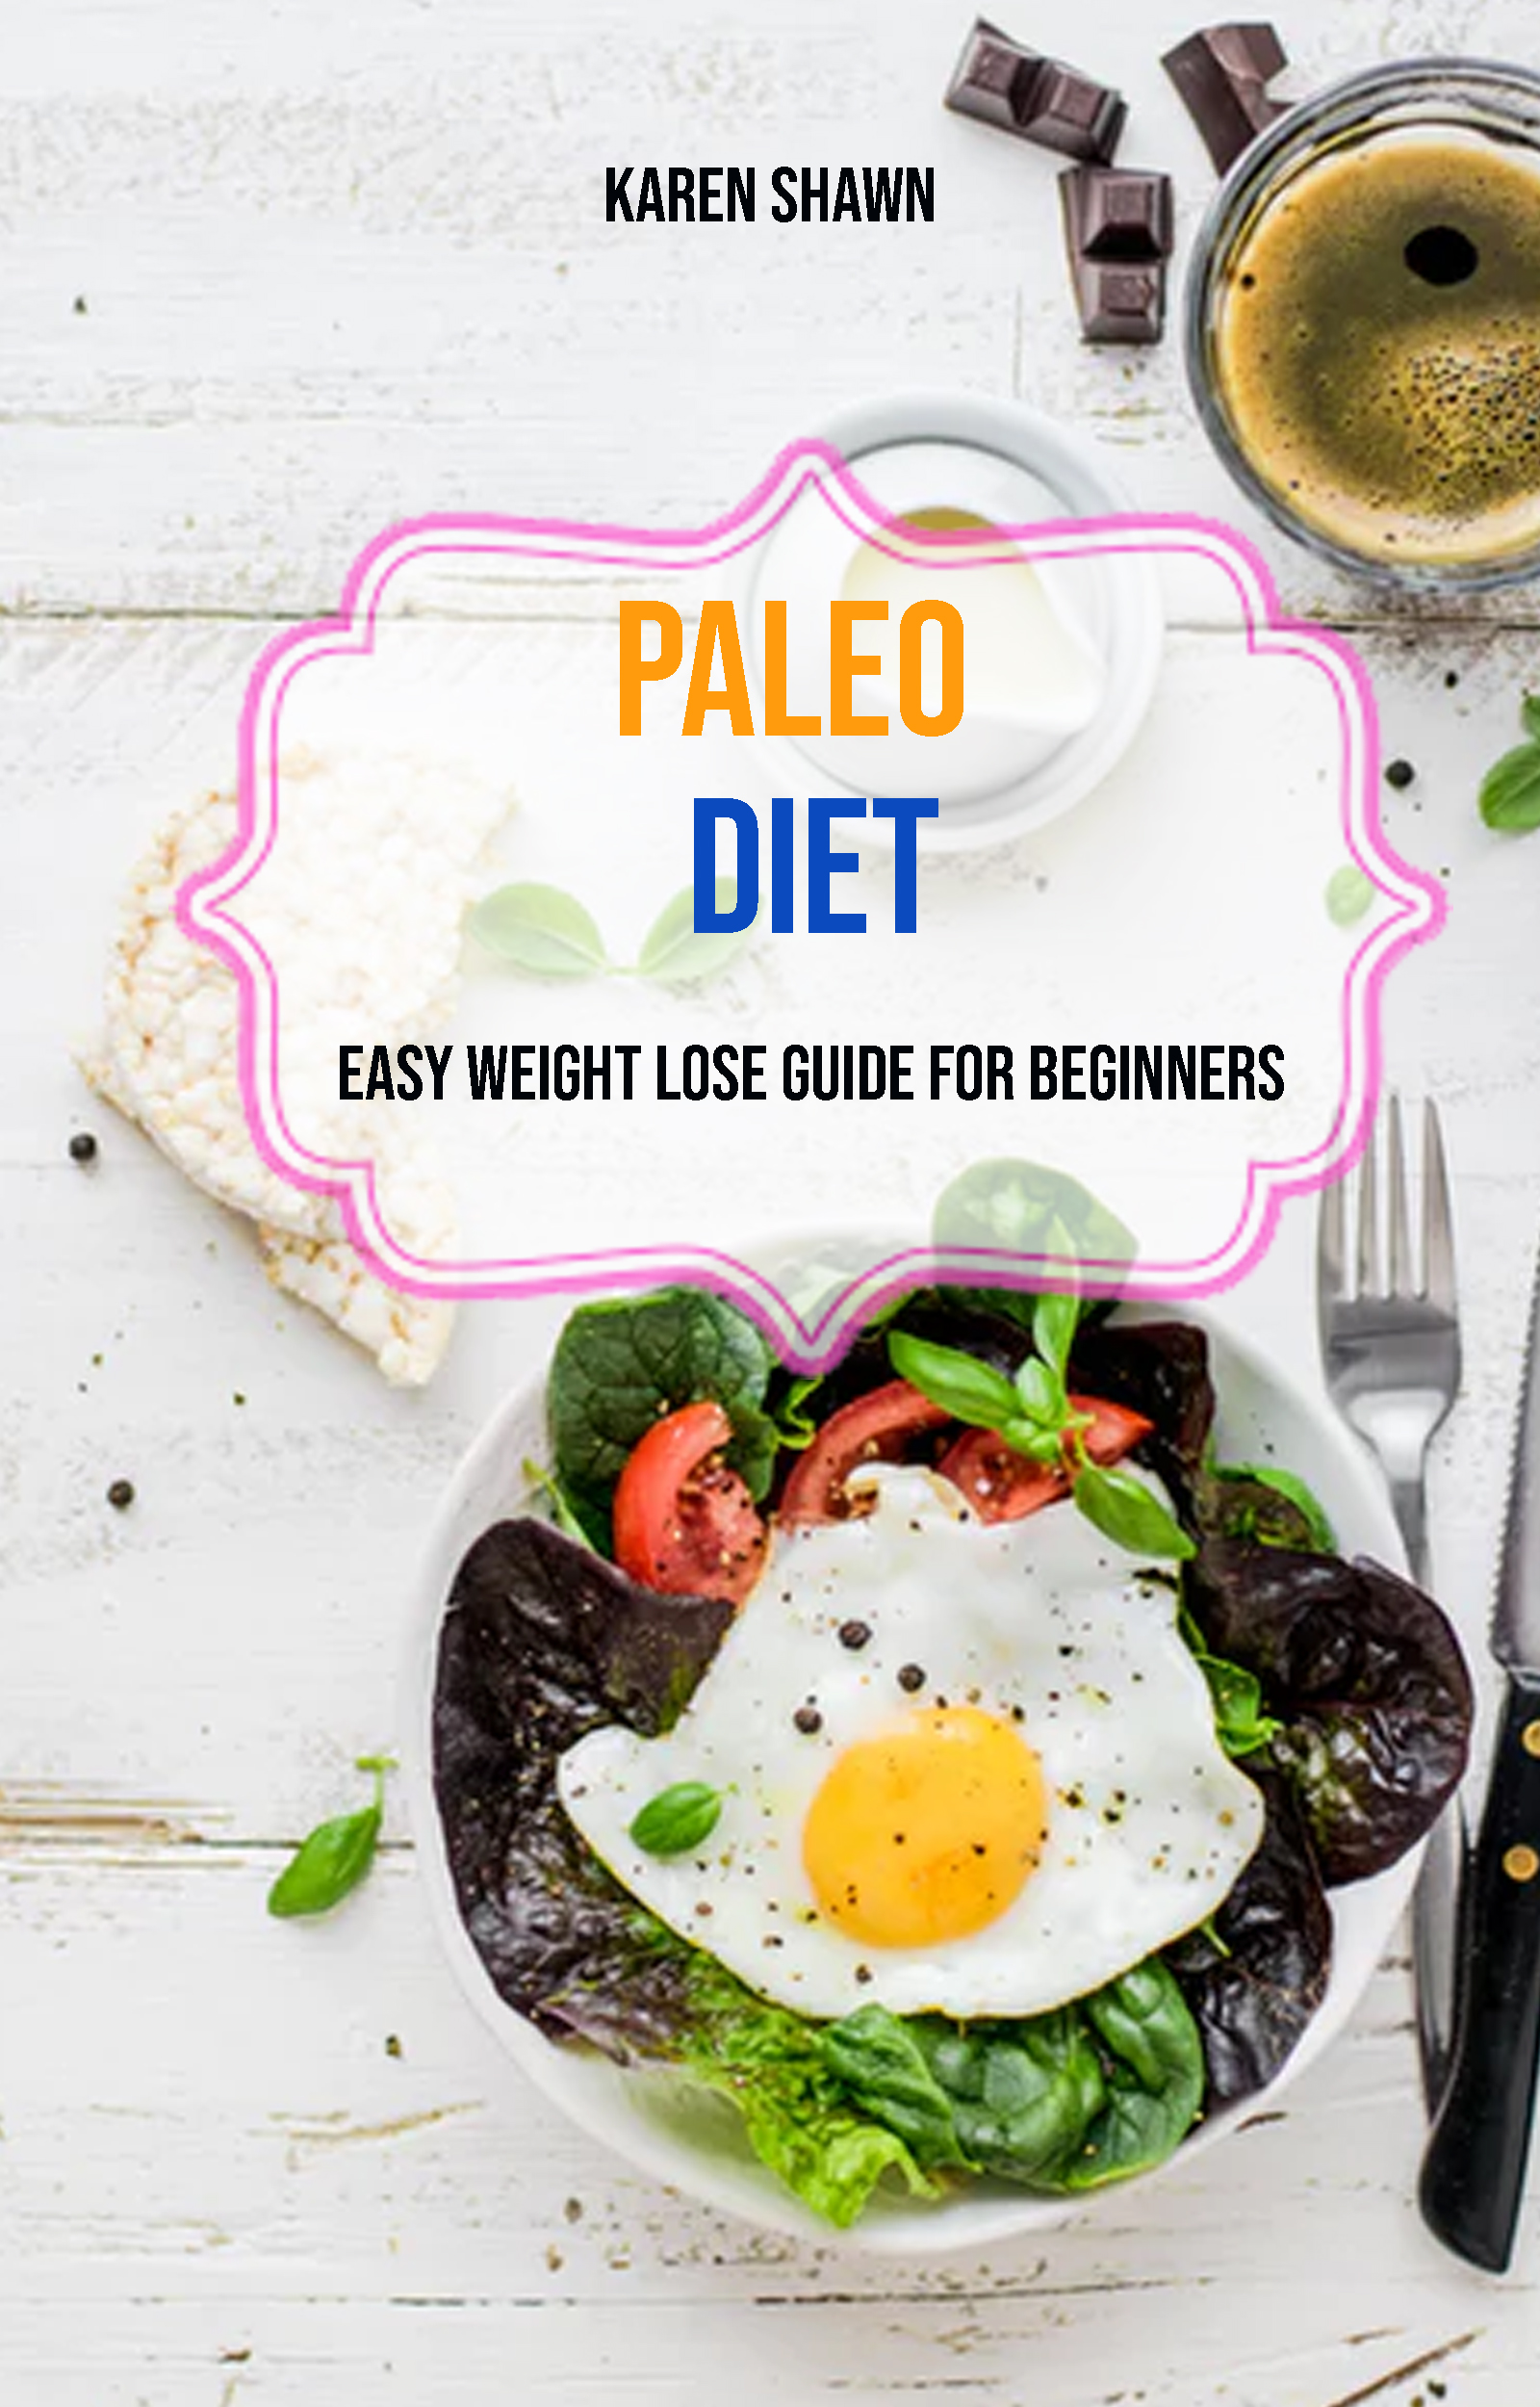 Paleo diet: easy weight lose guide for beginners